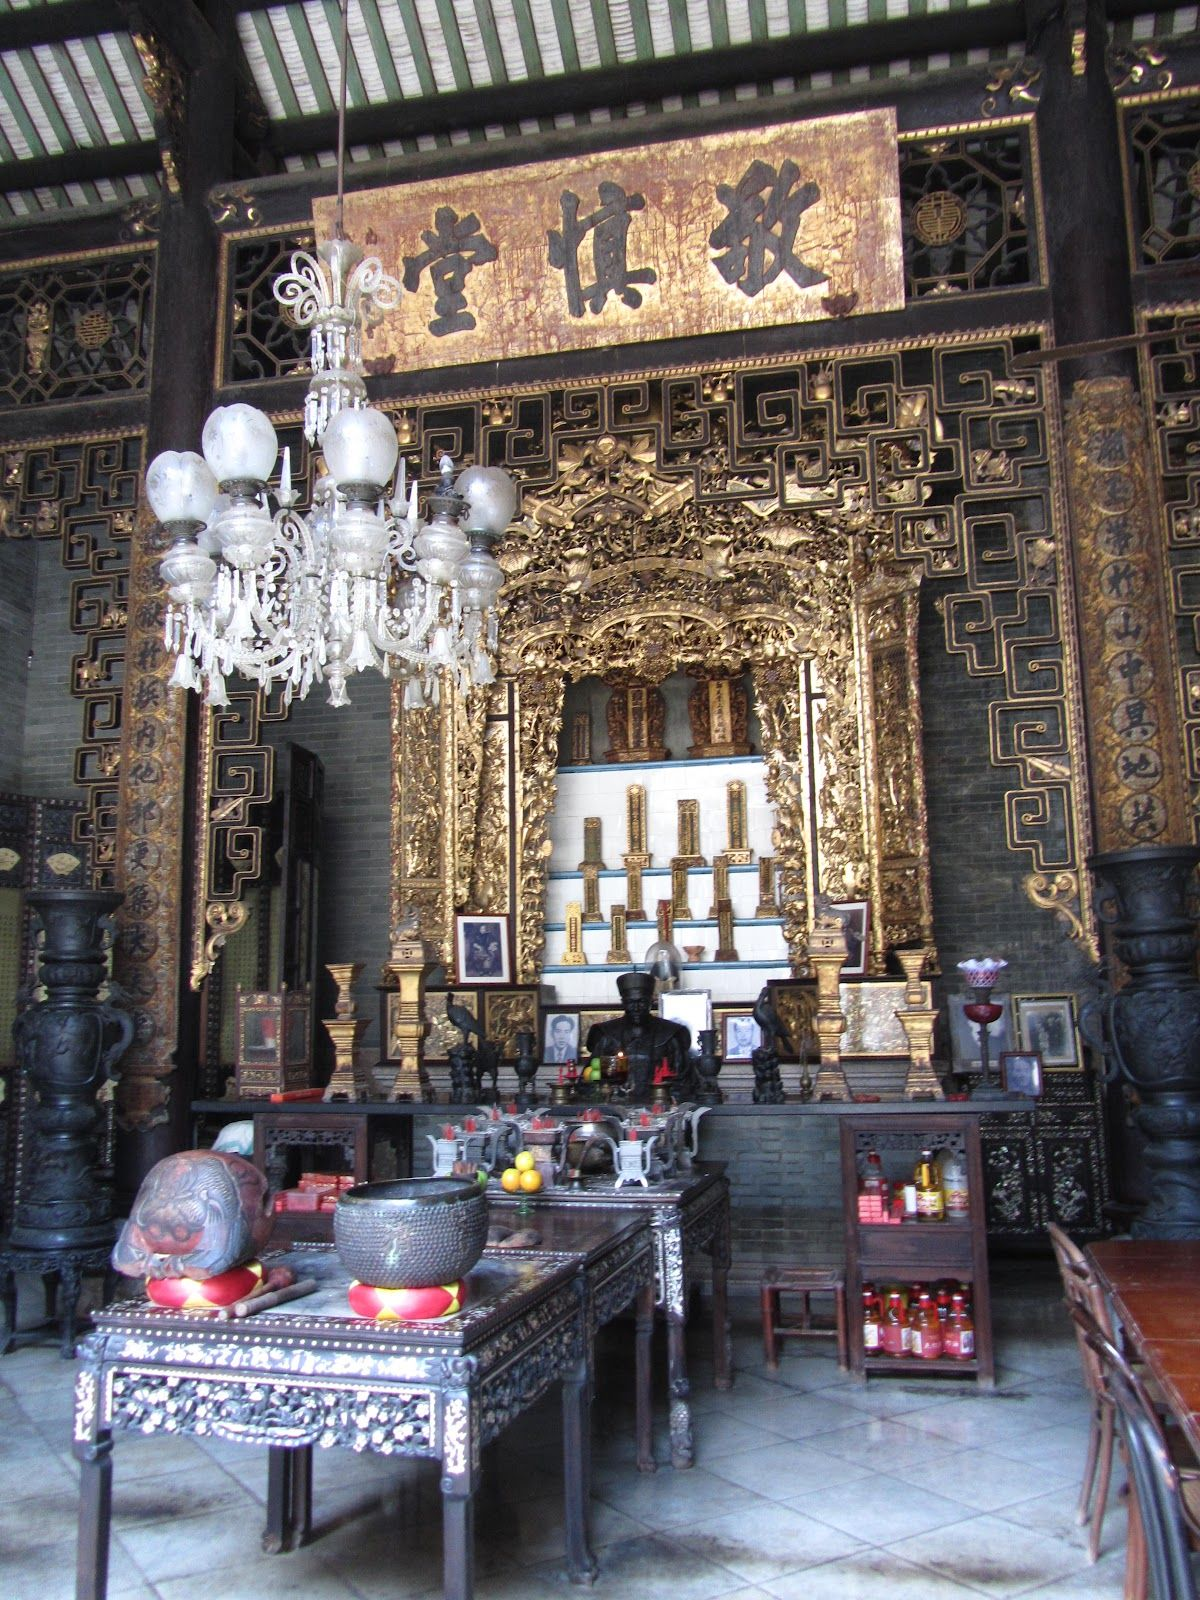 Chinese Ancestor Altar Hall Where The Names Of Ancestors Were Put On Plaques Like An Altar Chinese Architecture Chinese Interior China Architecture